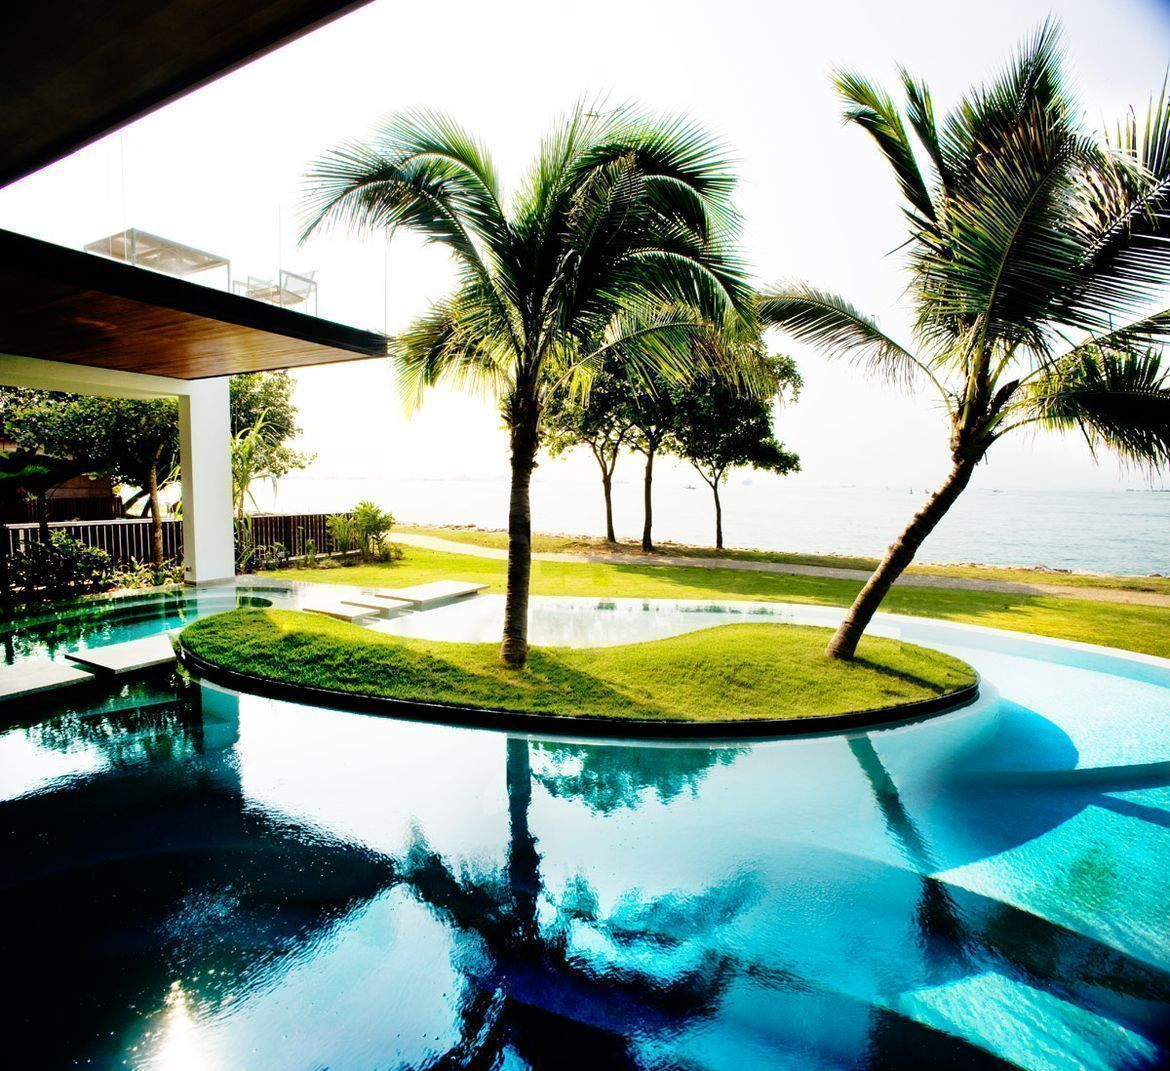 House Tour MillionDollar Home In Sentosa Cove - Incredible swimming pool cost 2000000